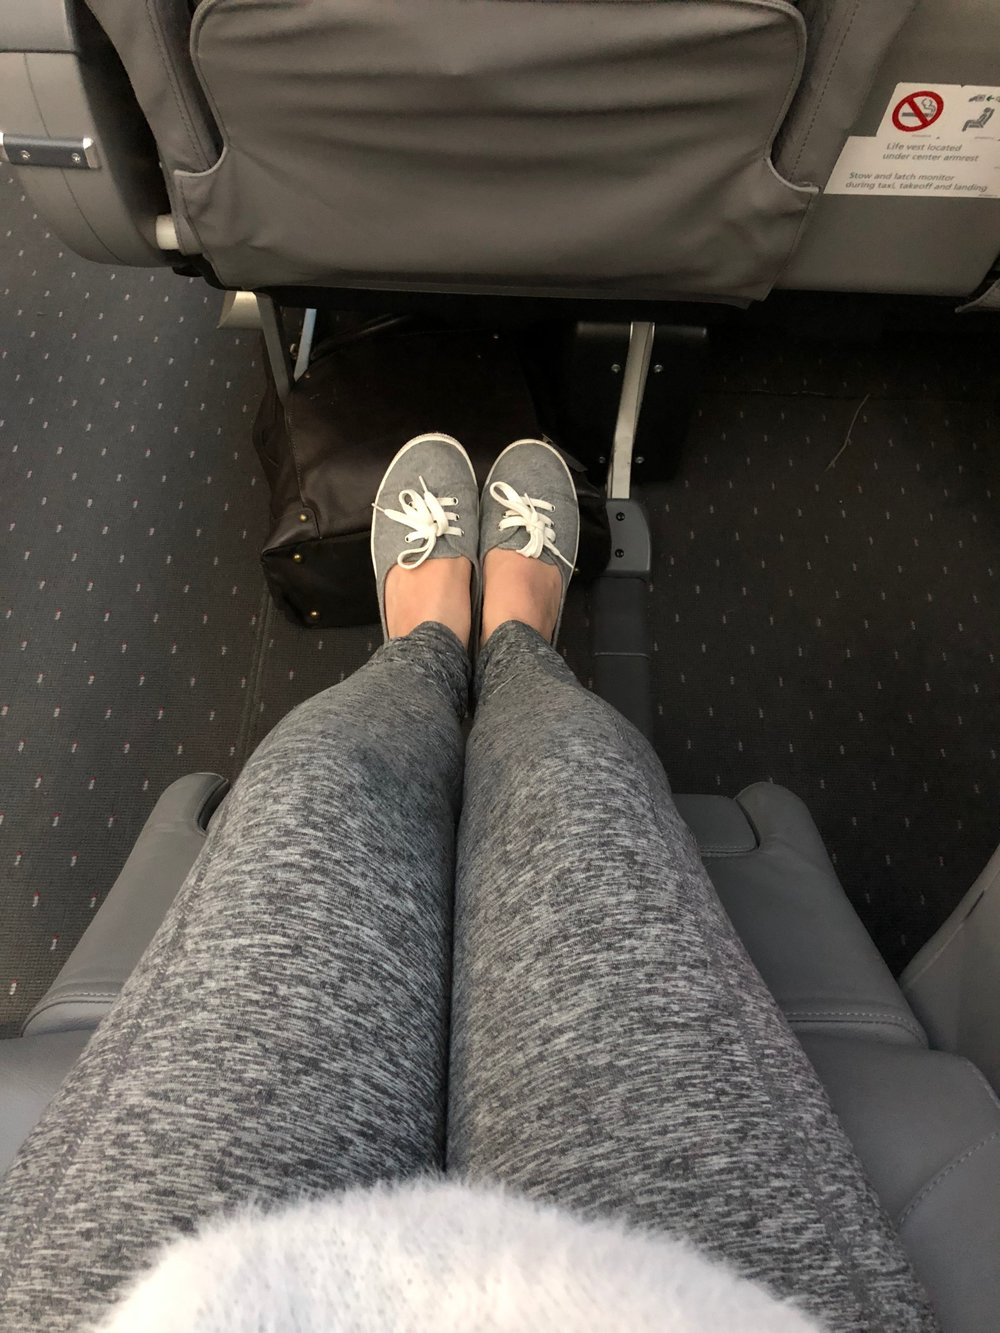 Legroom for daaaaaays